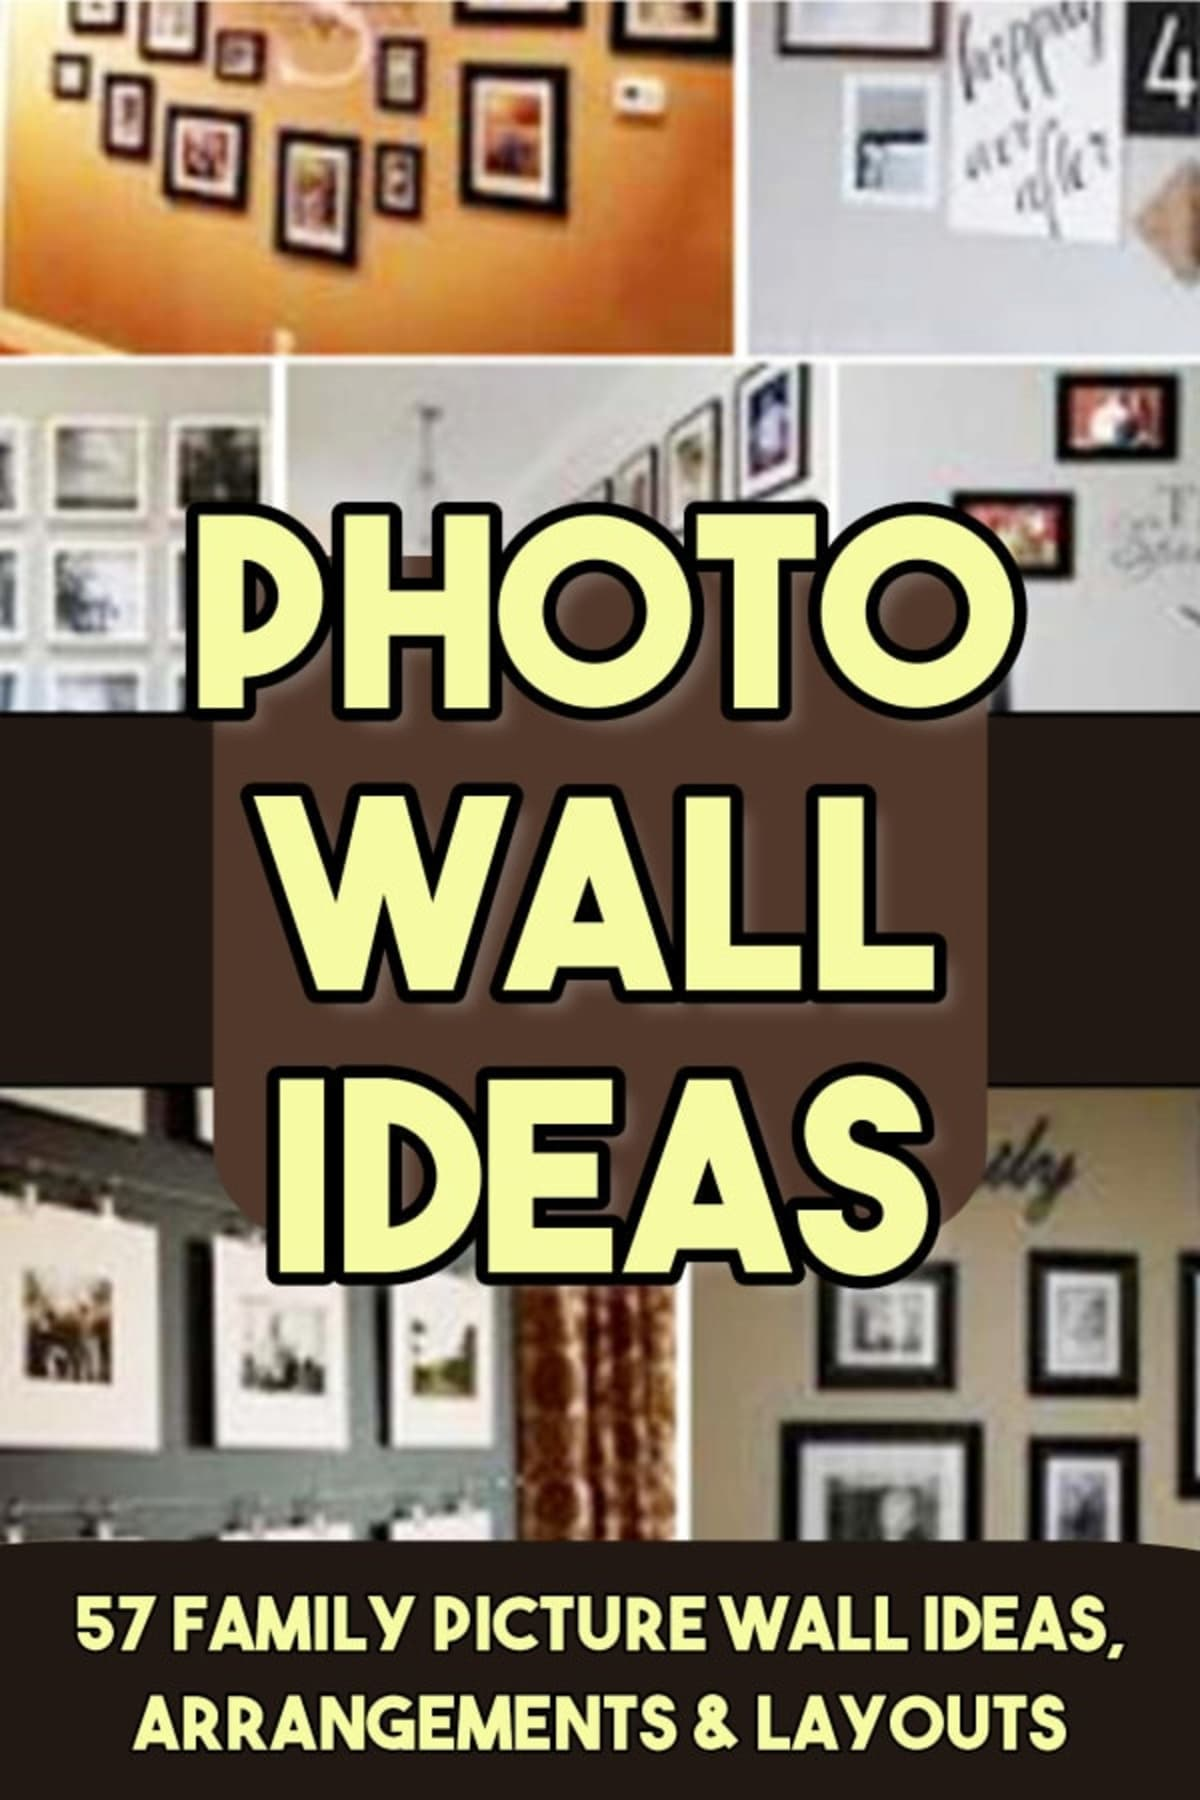 Photo Wall Collage Ideas For An Aesthetic Photo Wall of Family Pictures